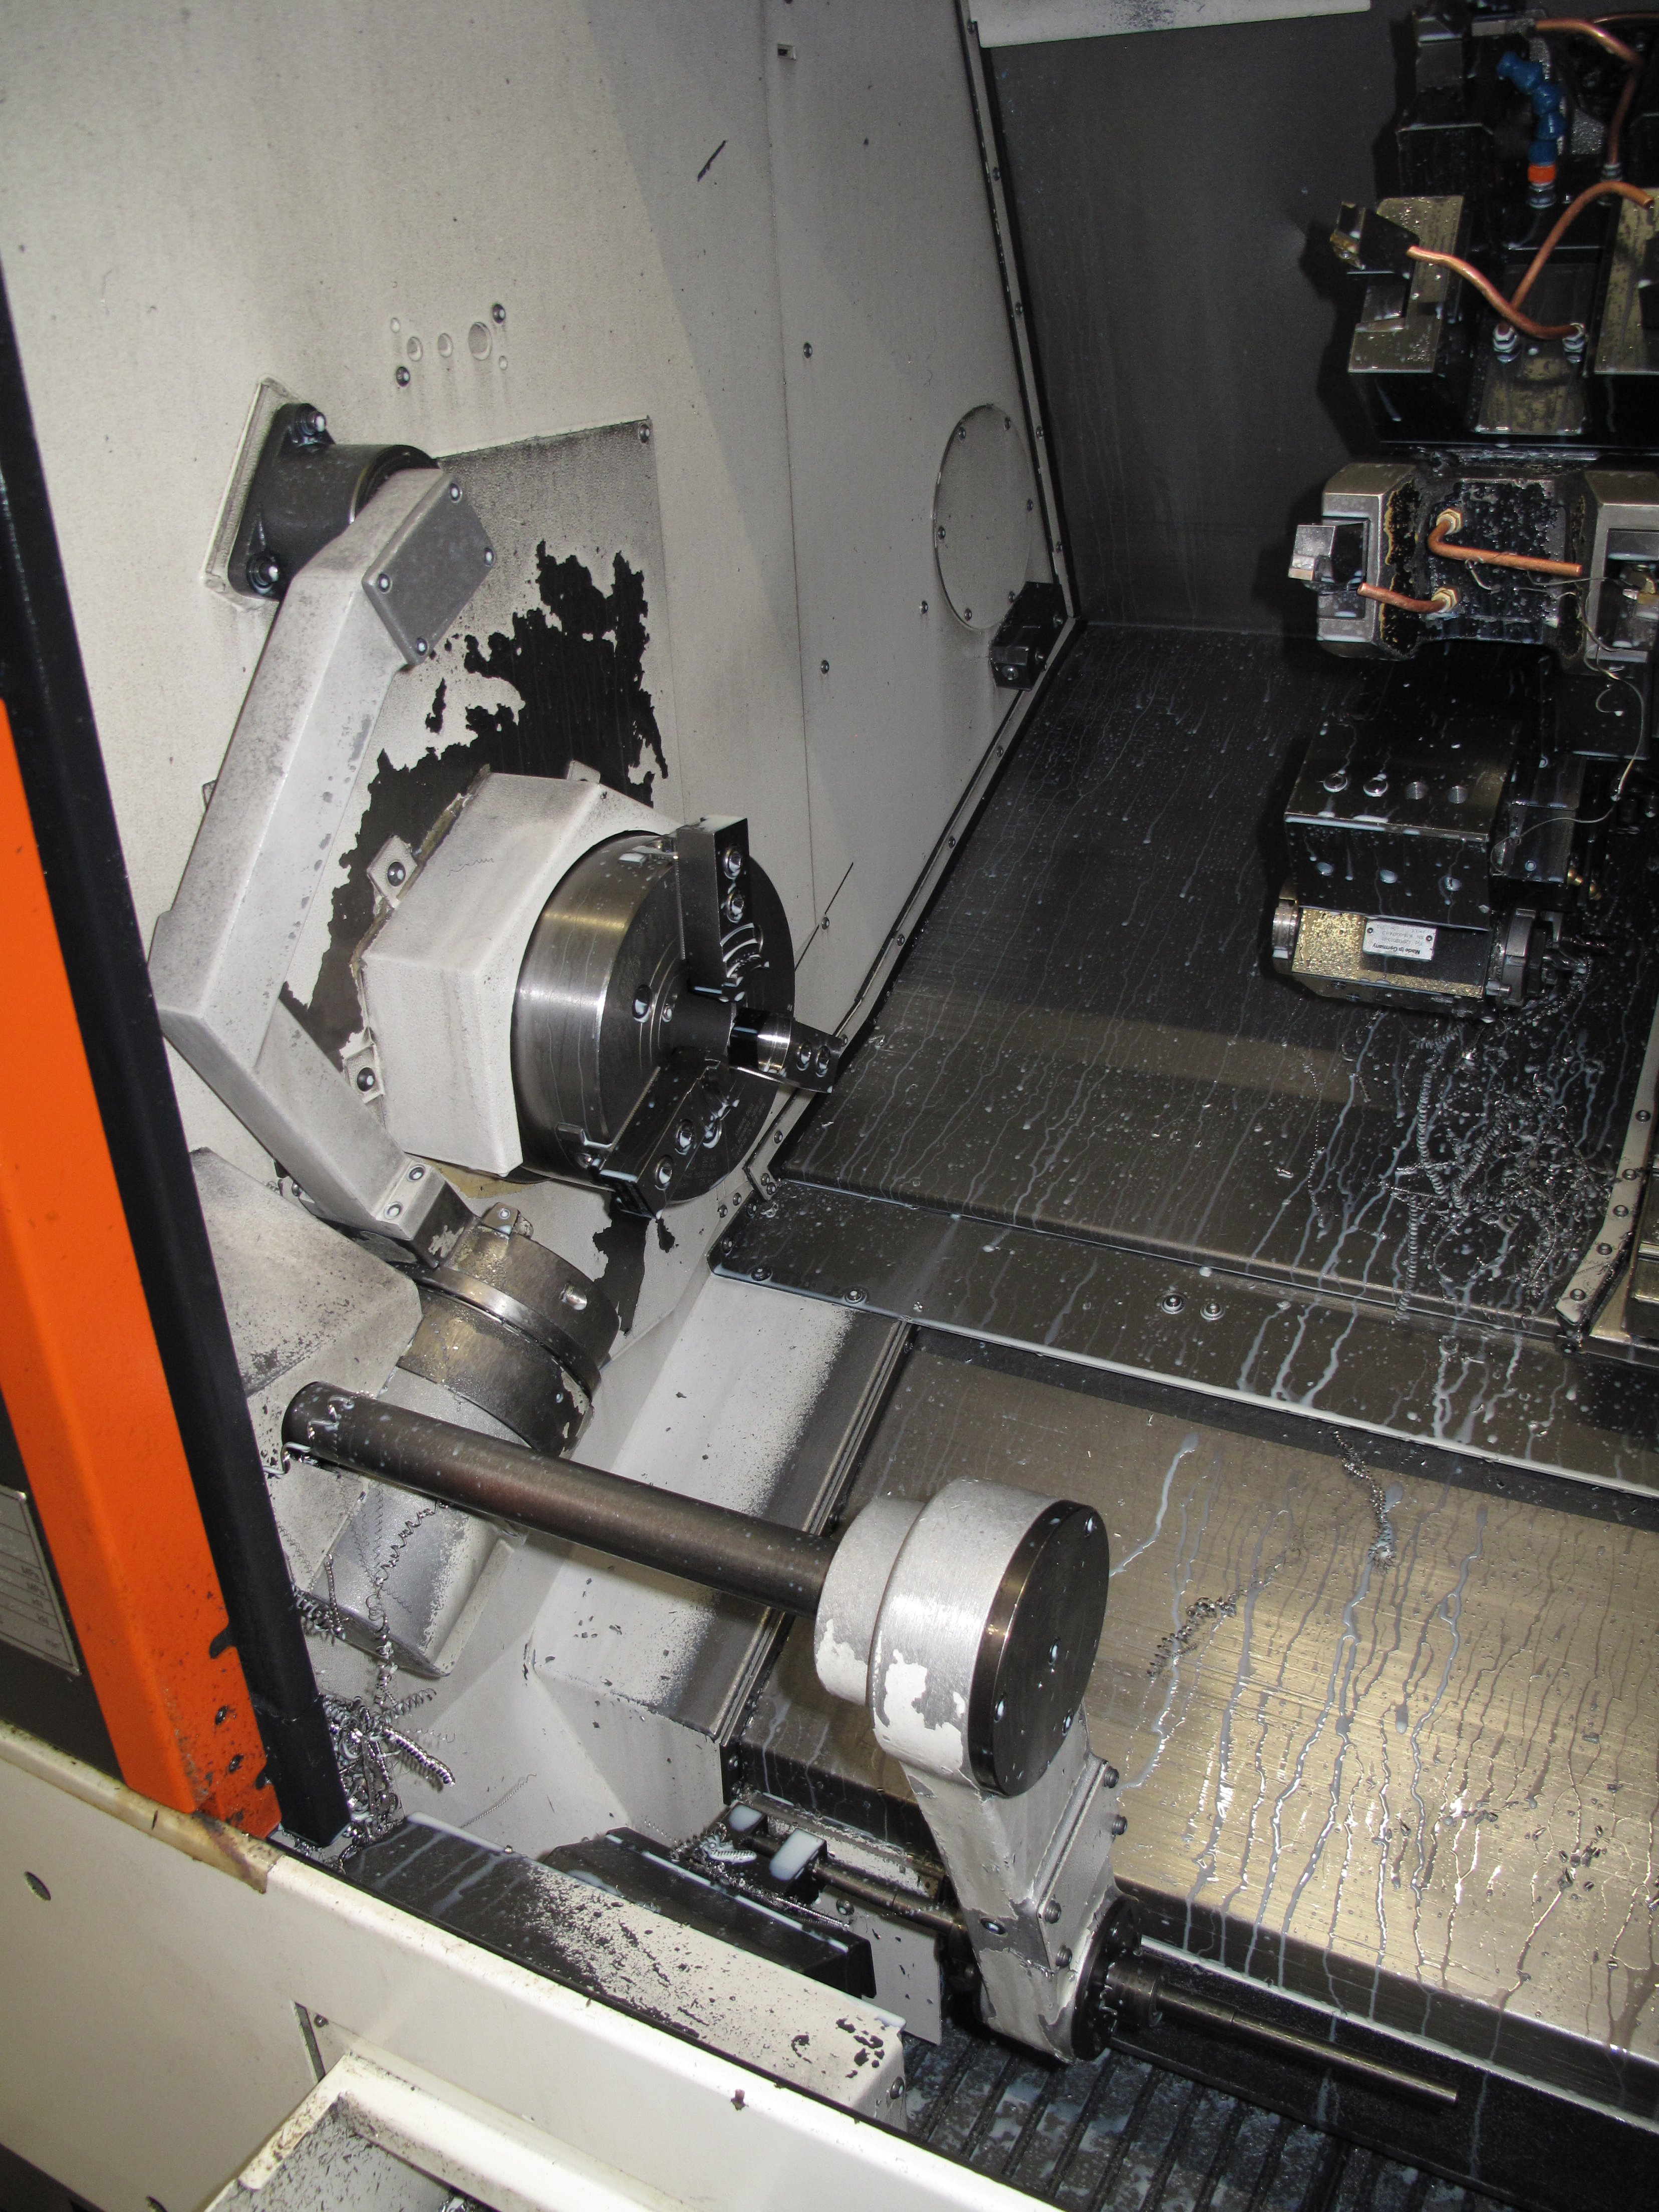 QTNX 200II MY Main Spindle and parts catcher